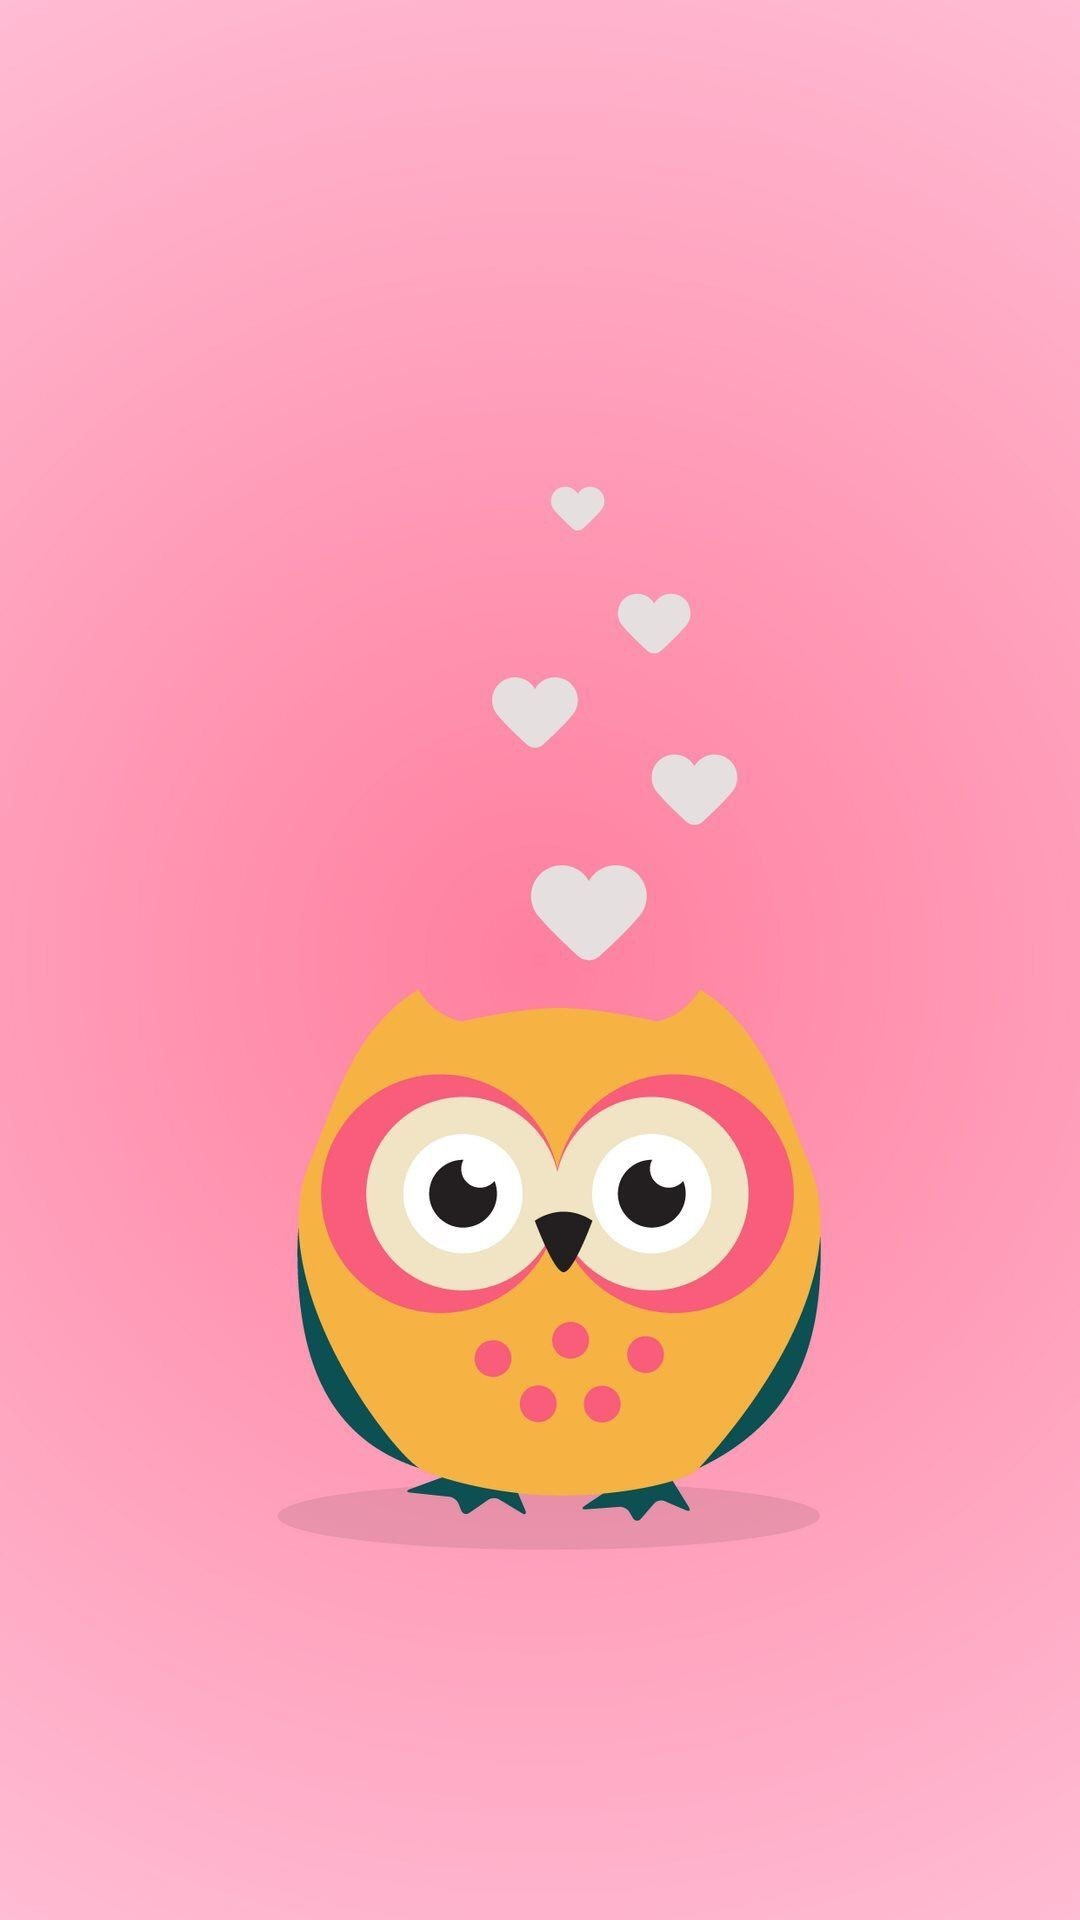 Res: 1080x1920, Owl Wallpaper, Cute Owl, Iphone Wallpapers, Owls, Iphone Backgrounds, Birds